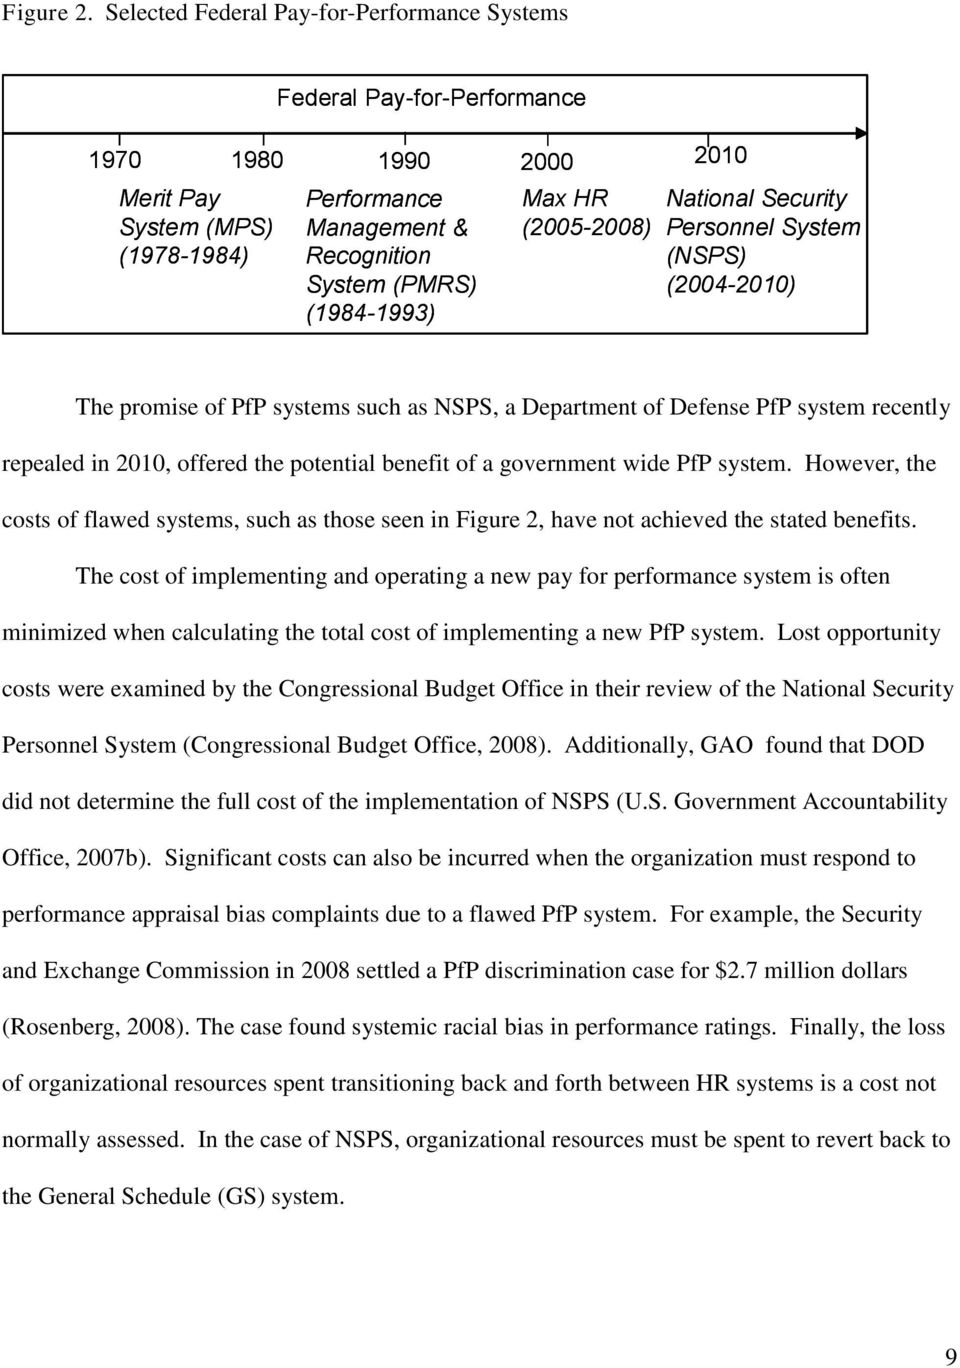 (1984-1993) 2010 National Security Personnel System (NSPS) (2004-2010) The promise of PfP systems such as NSPS, a Department of Defense PfP system recently repealed in 2010, offered the potential